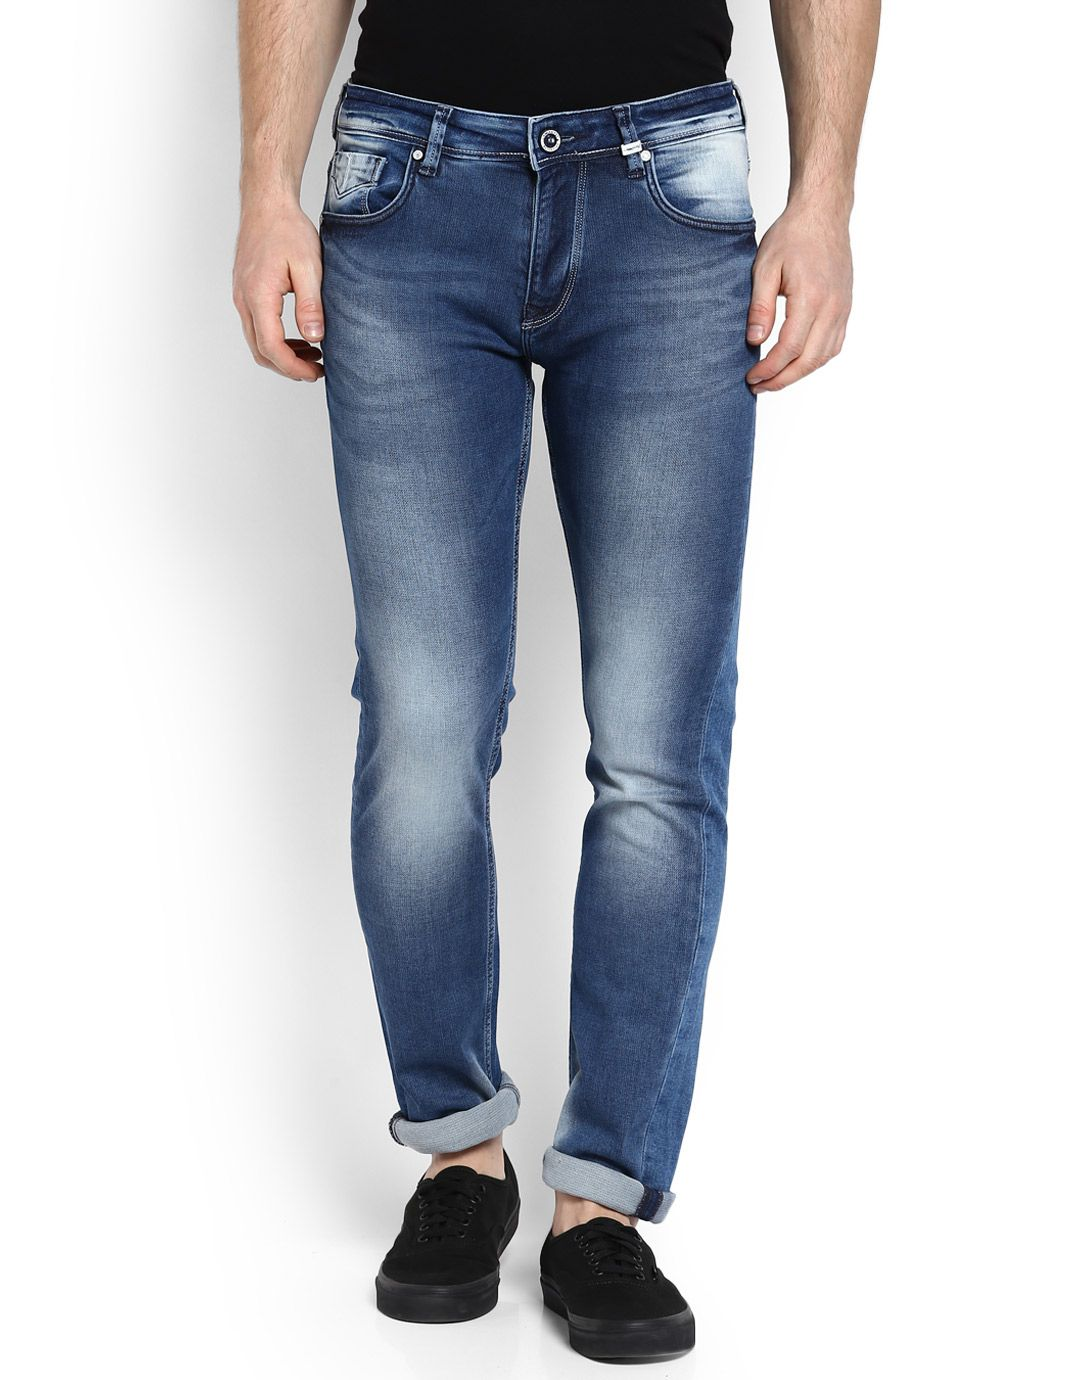 LAWMAN pg3 Blue Relaxed Jeans